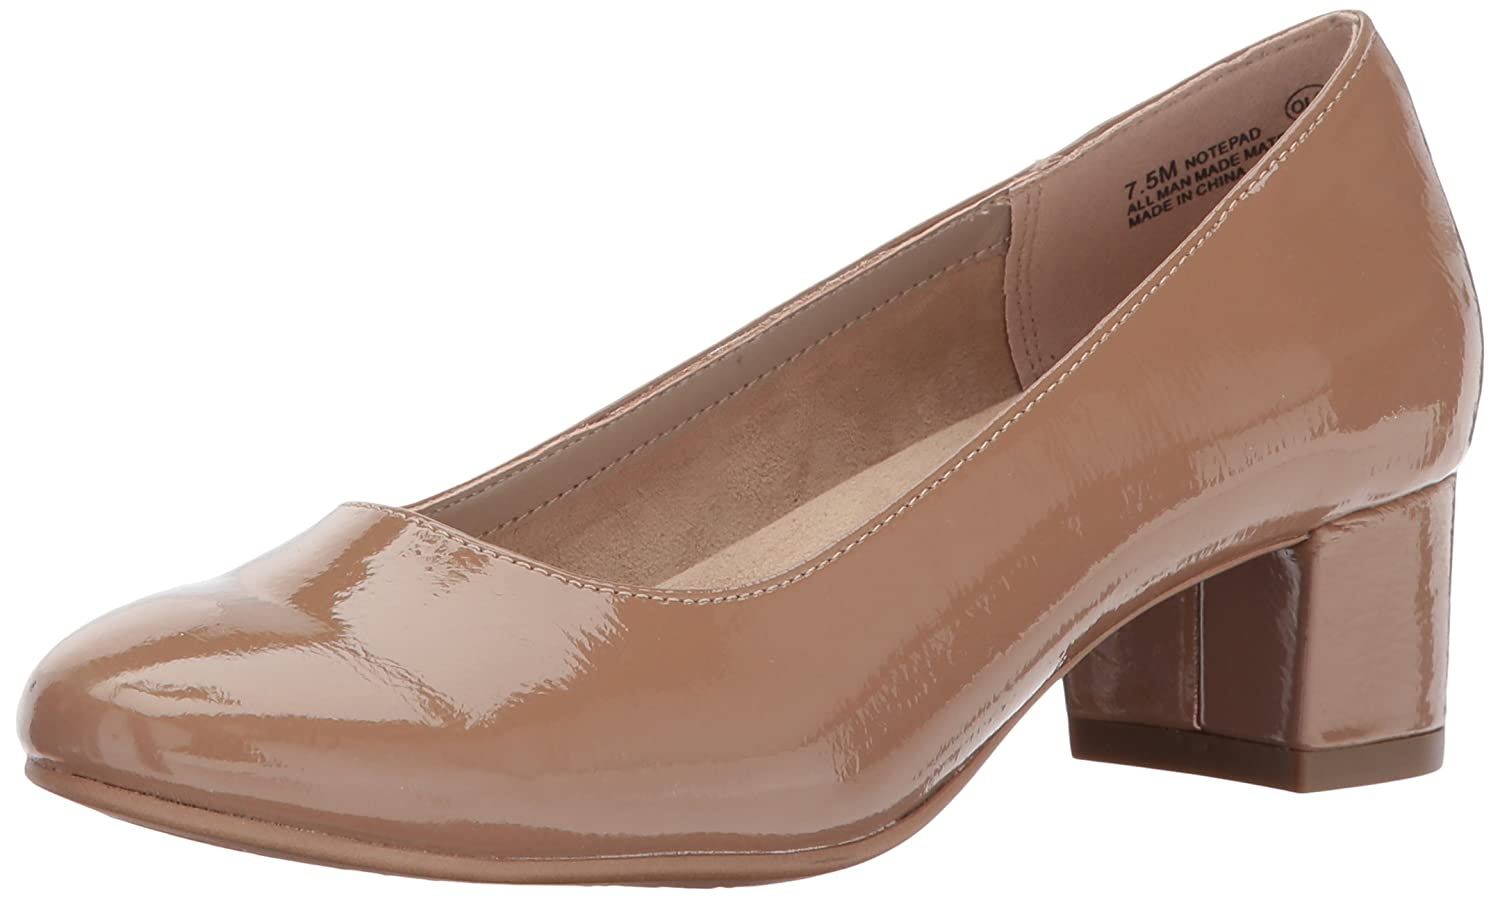 Aerosoles A2 by Women's Notepad Dress Pump B06Y4BHD8C 12 M US|Nude Patent